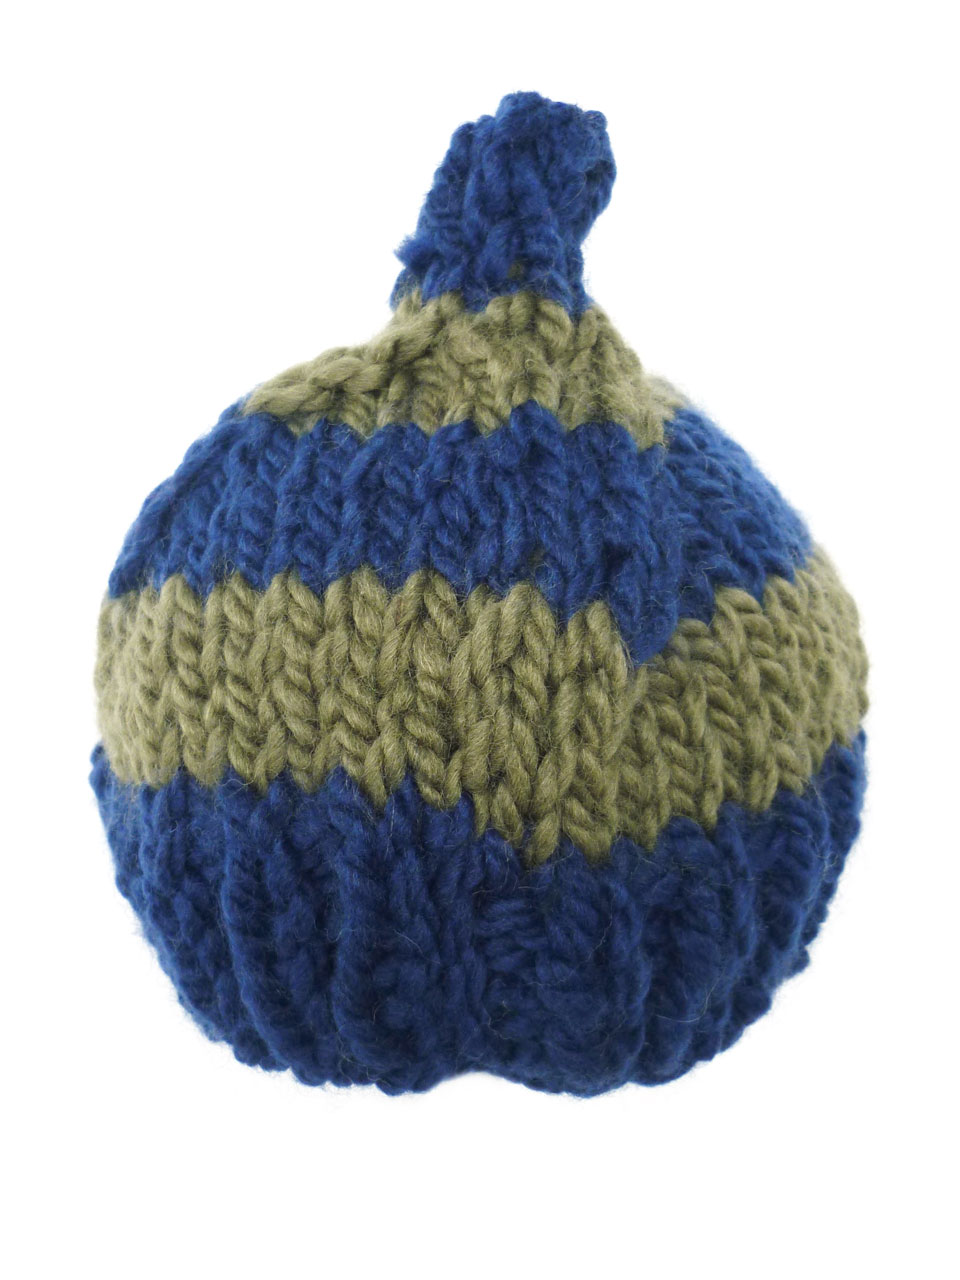 Hat puntje stripe knitted - dblue/green